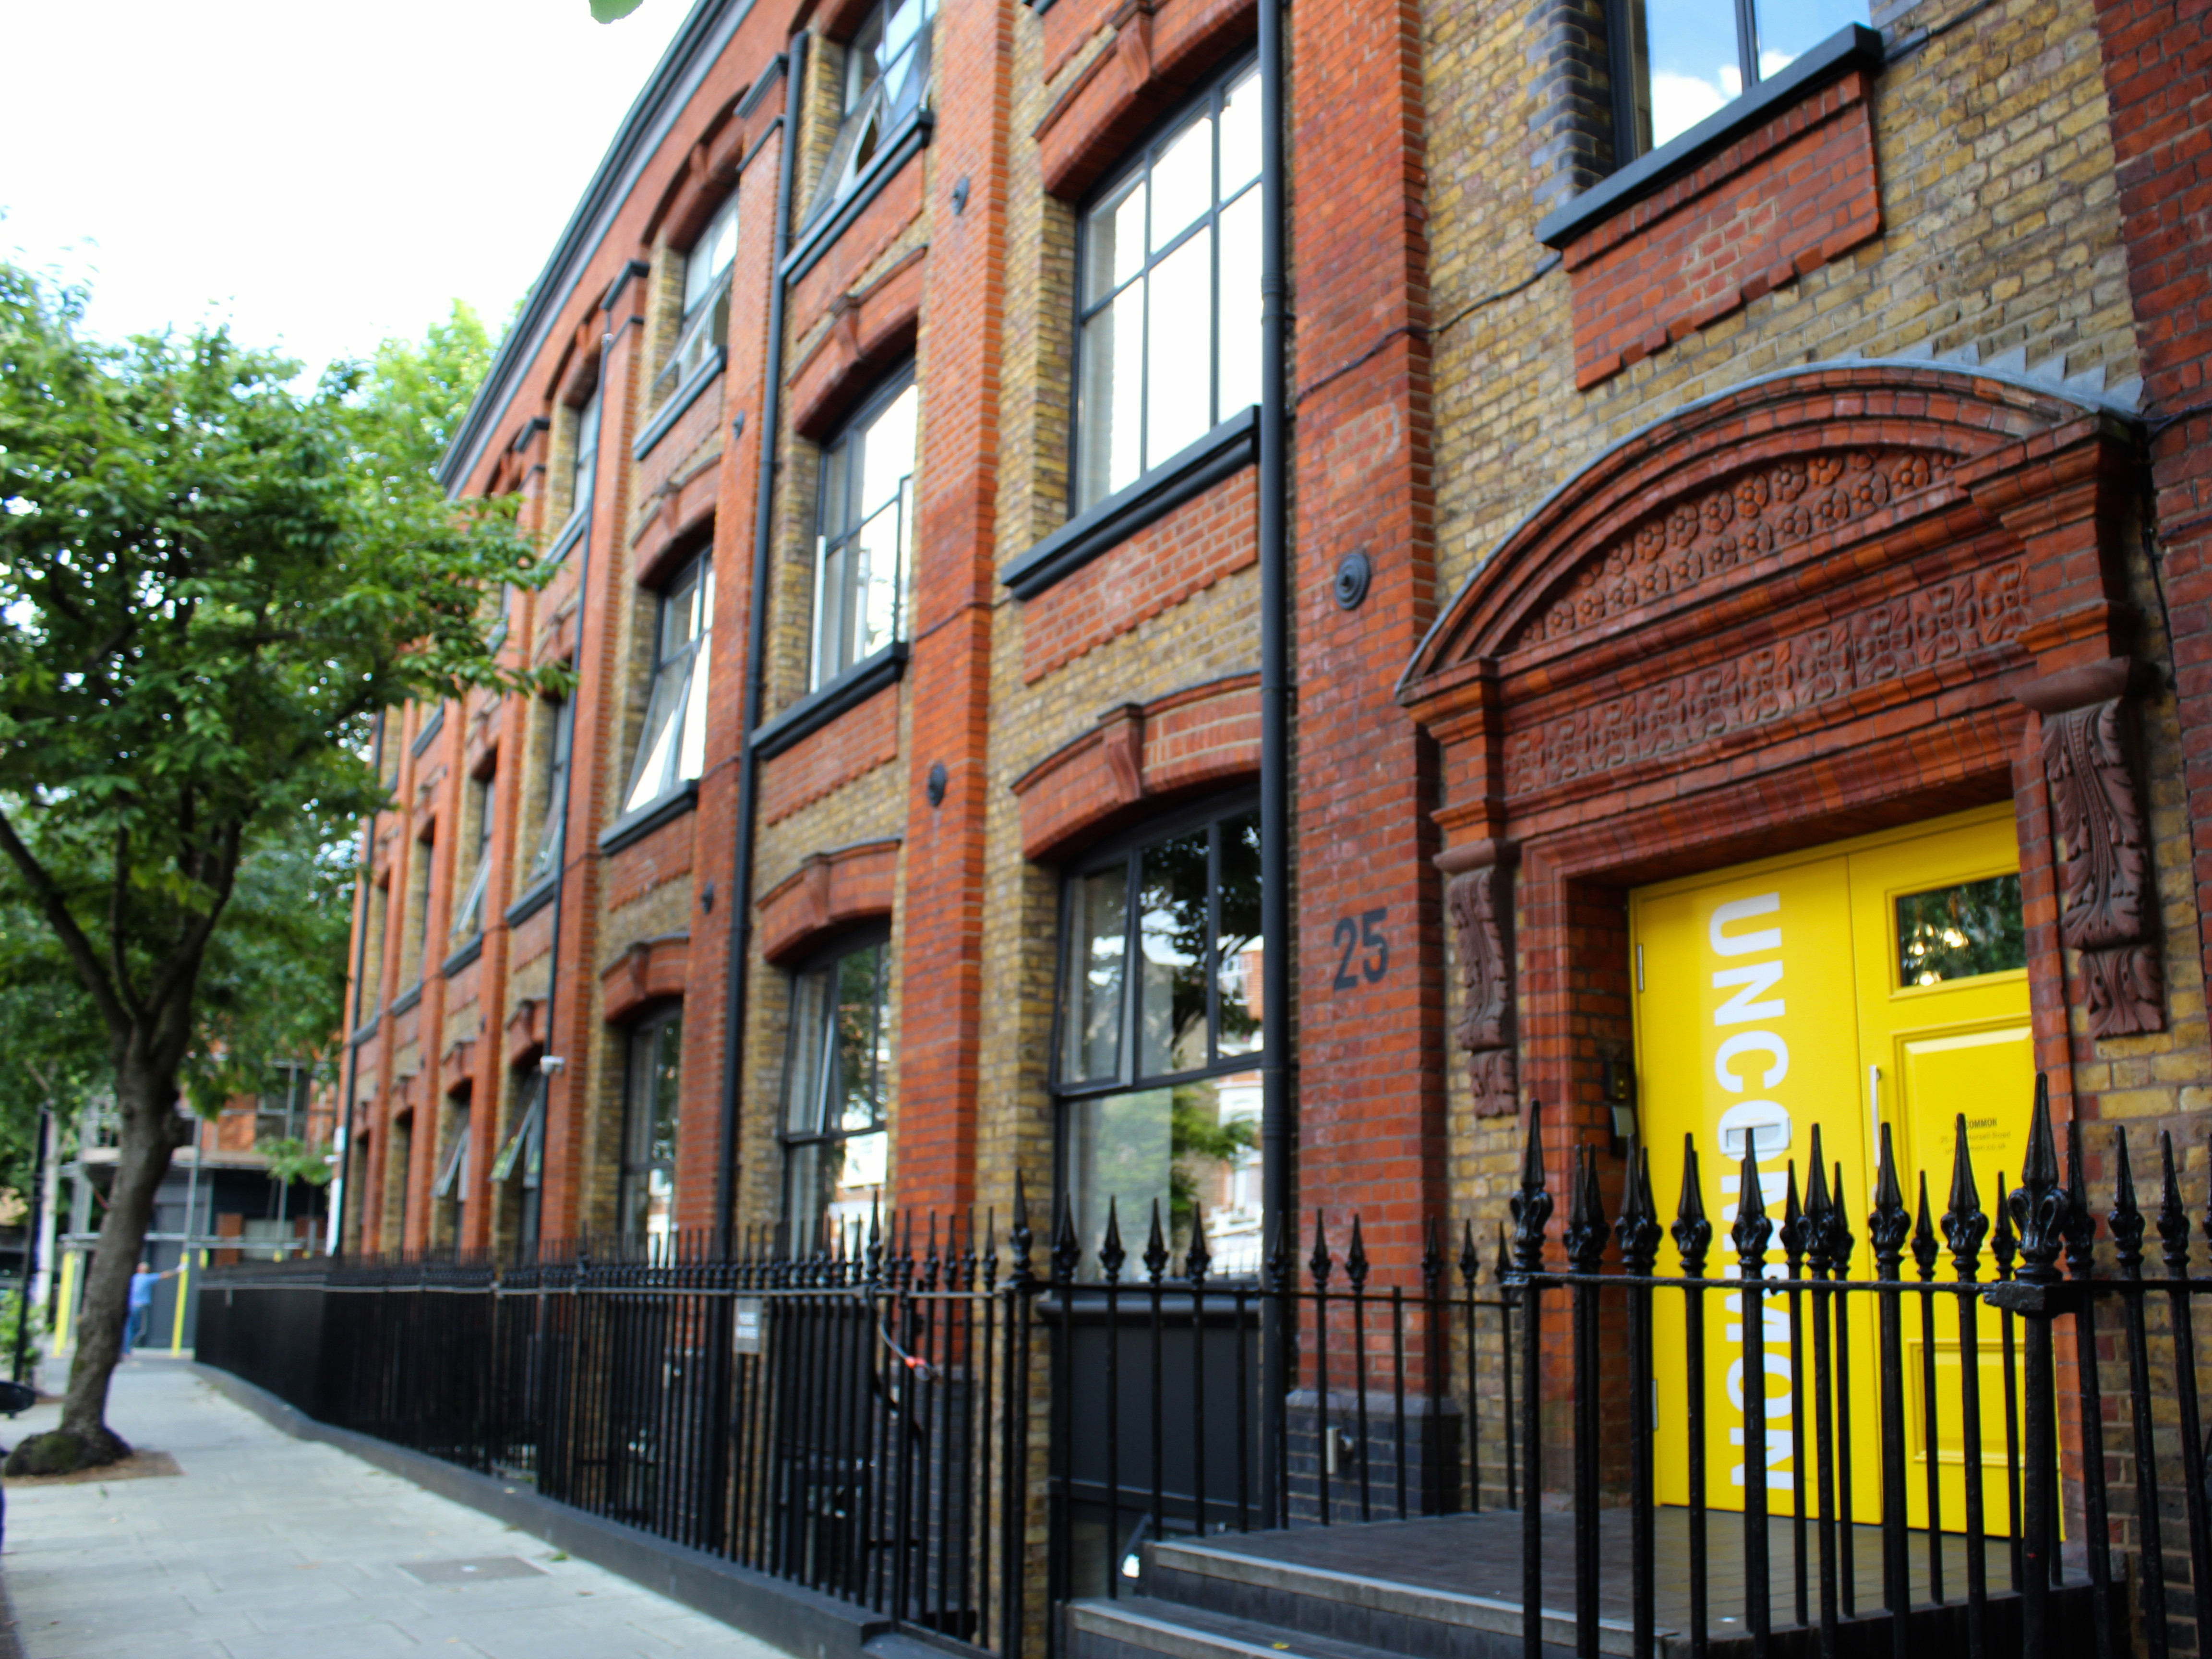 25 Horsell Road, N5 - Highbury & Islington (Shared Office Space & Private Offices)